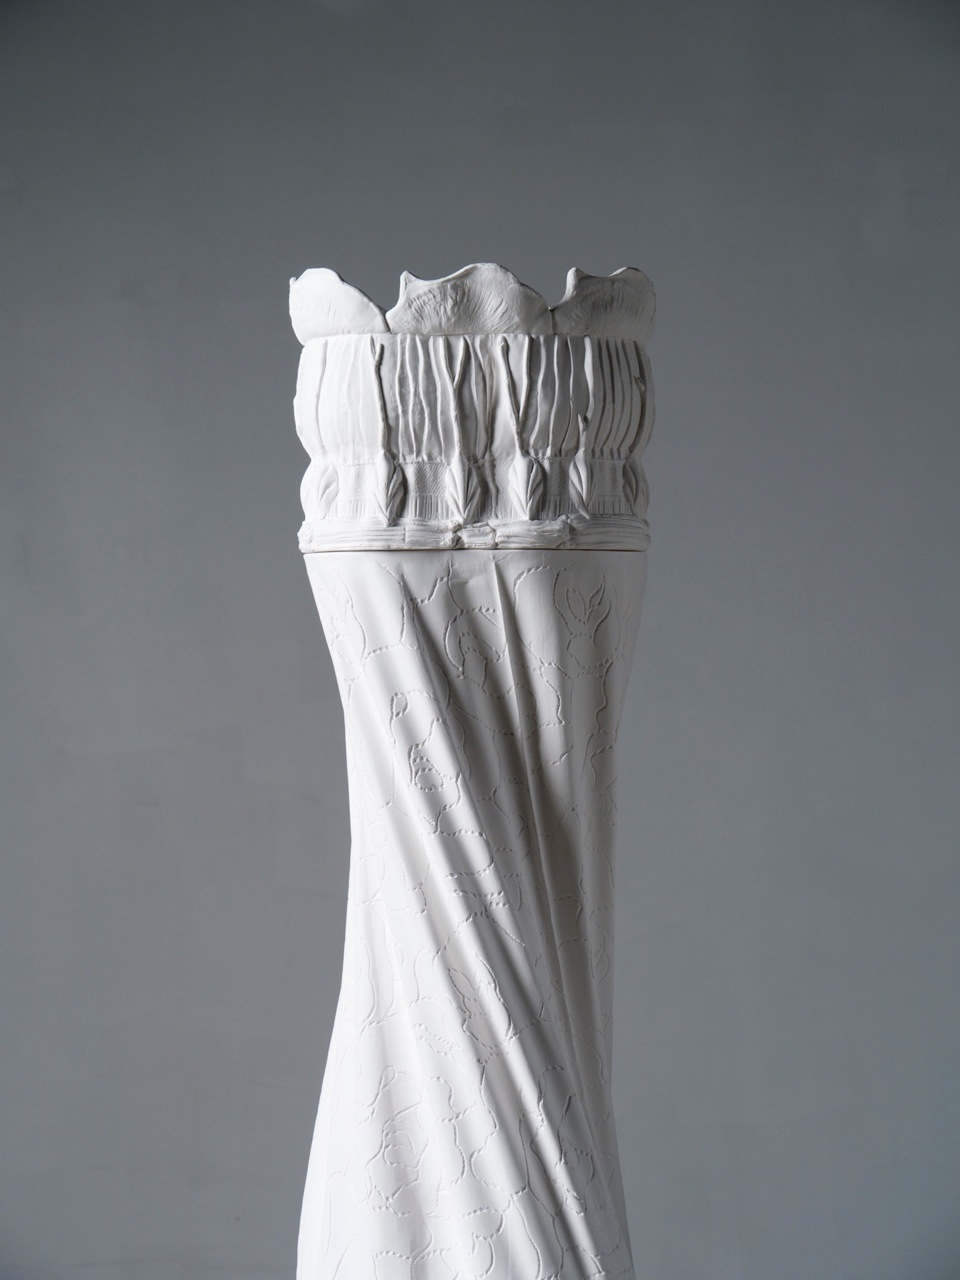 Host from Arbor Vitae, 2015, porcelain, 270 × 50 × 50 cm